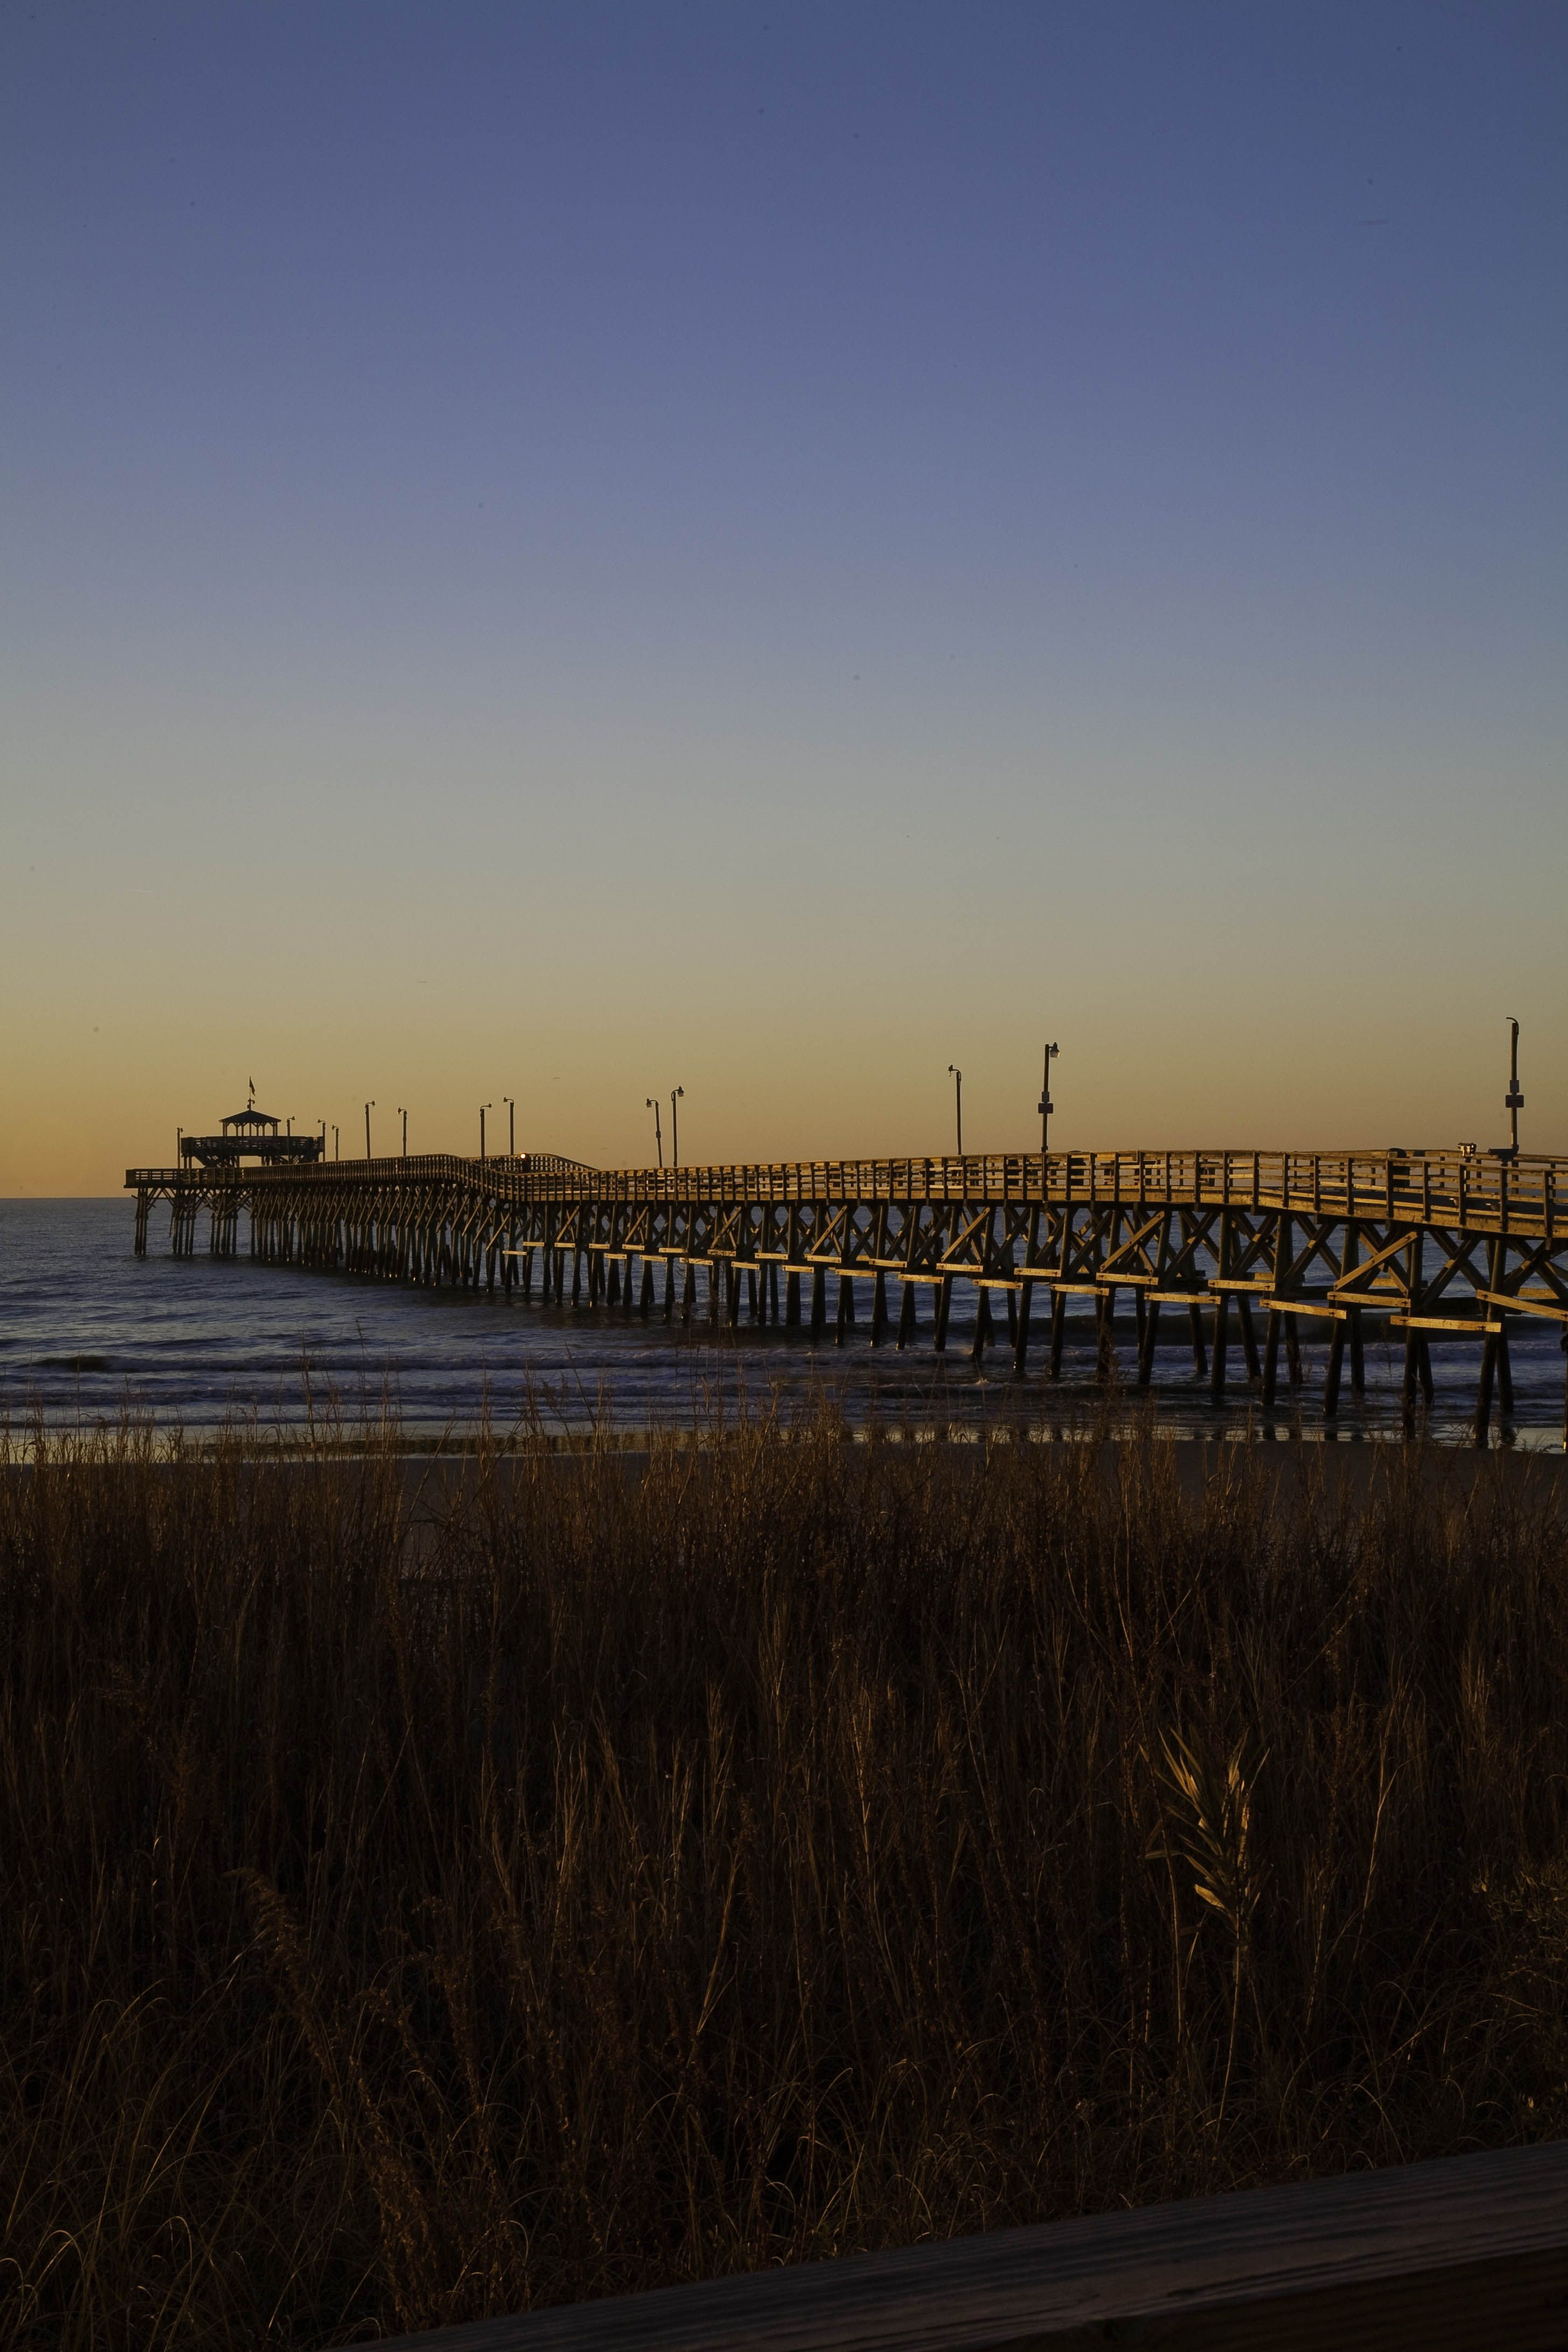 A Beautiful Sunset At The Cherry Grove Pier As Viewed From Prince Resort In North Myrtle Beach South Carolina